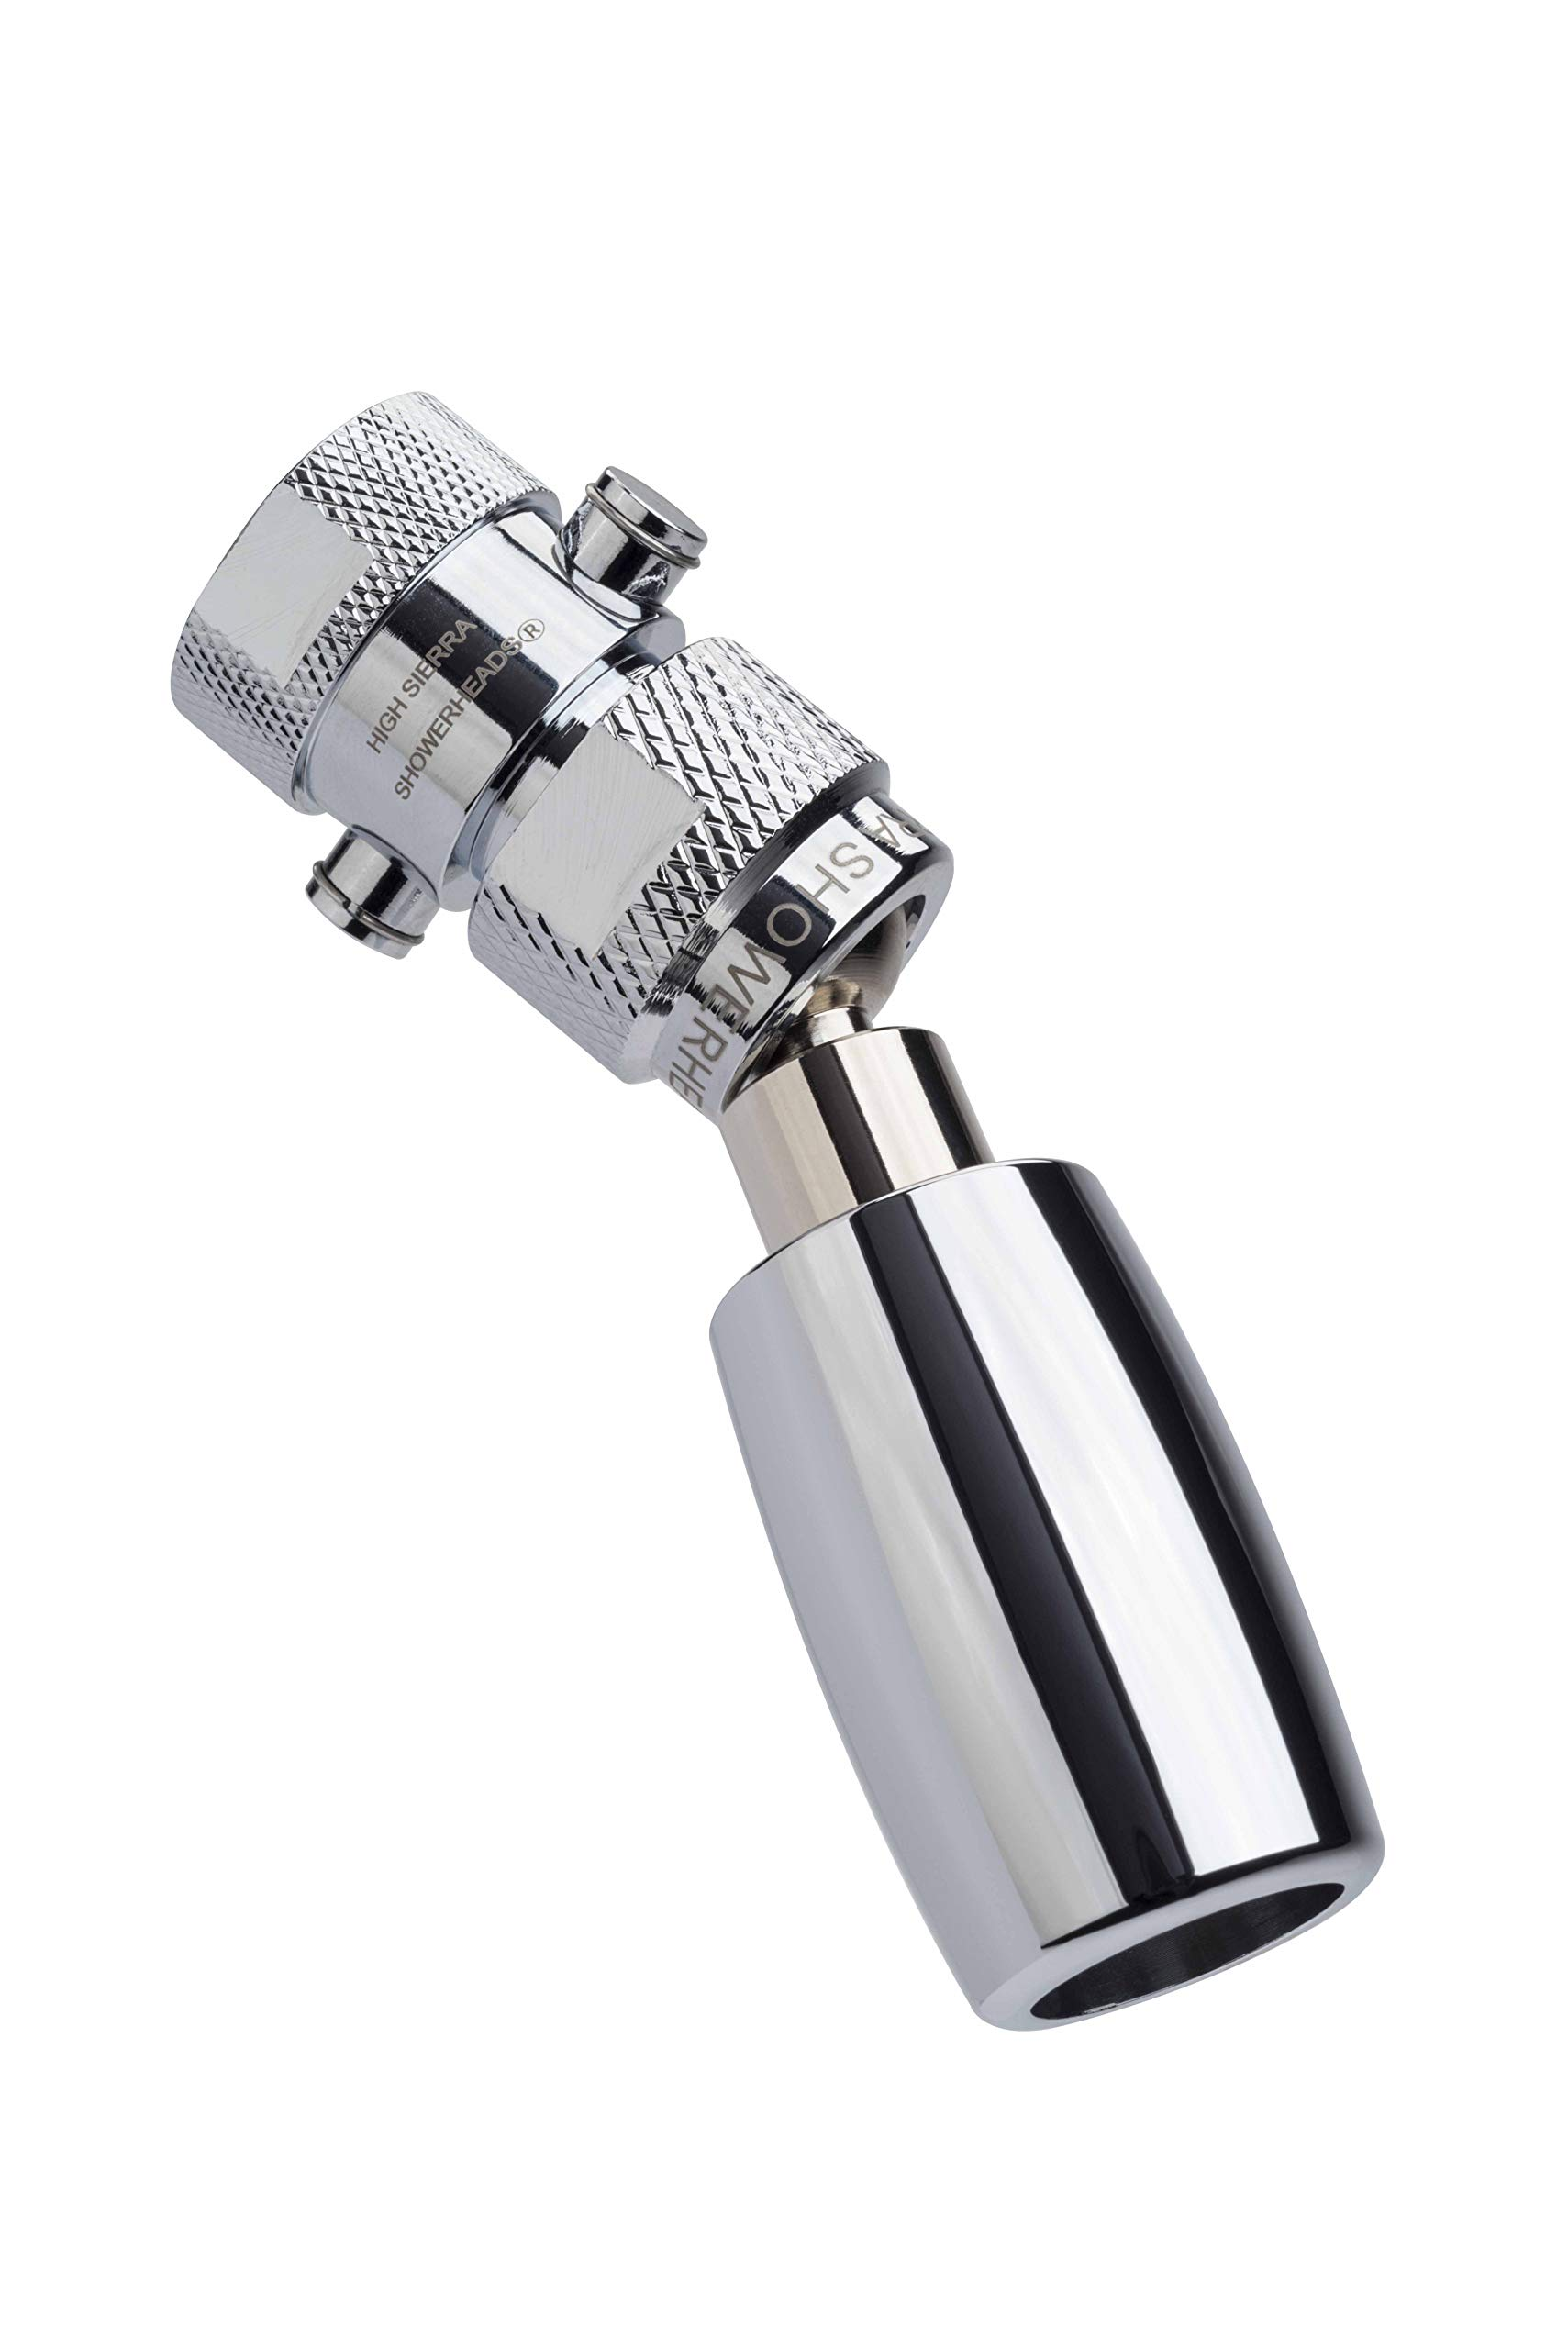 High Sierra's All Metal WaterSense Certified 1.8 GPM High Efficiency Low Flow Showerhead with Trickle Valve. Available in: CHROME, Brushed Nickel, Oil Rubbed Bronze, or Polished Brass